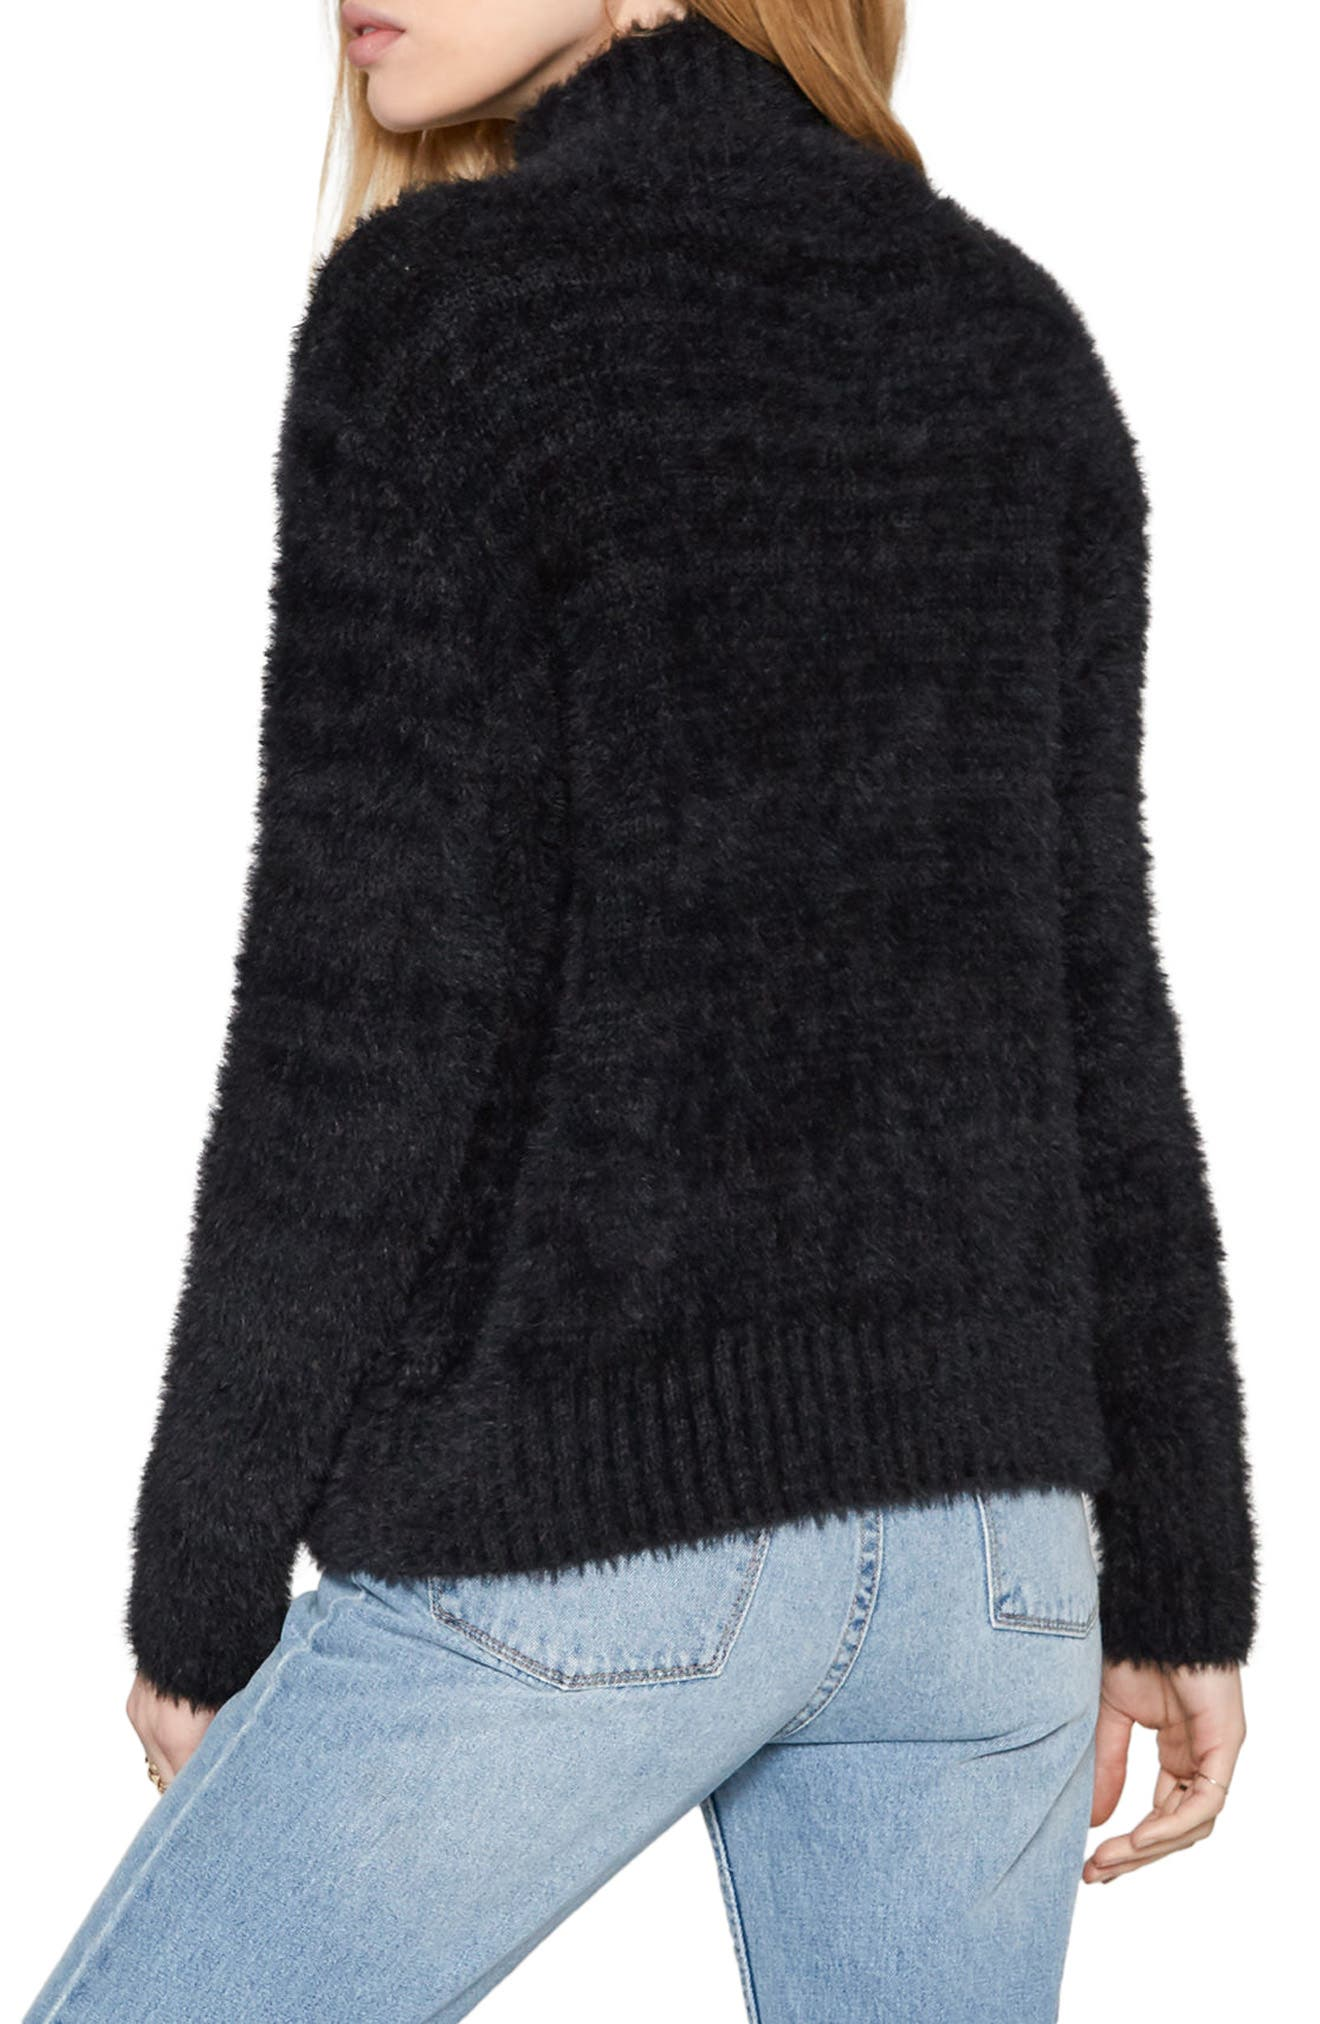 Cool Winds Cable Knit Sweater,                             Alternate thumbnail 3, color,                             Black